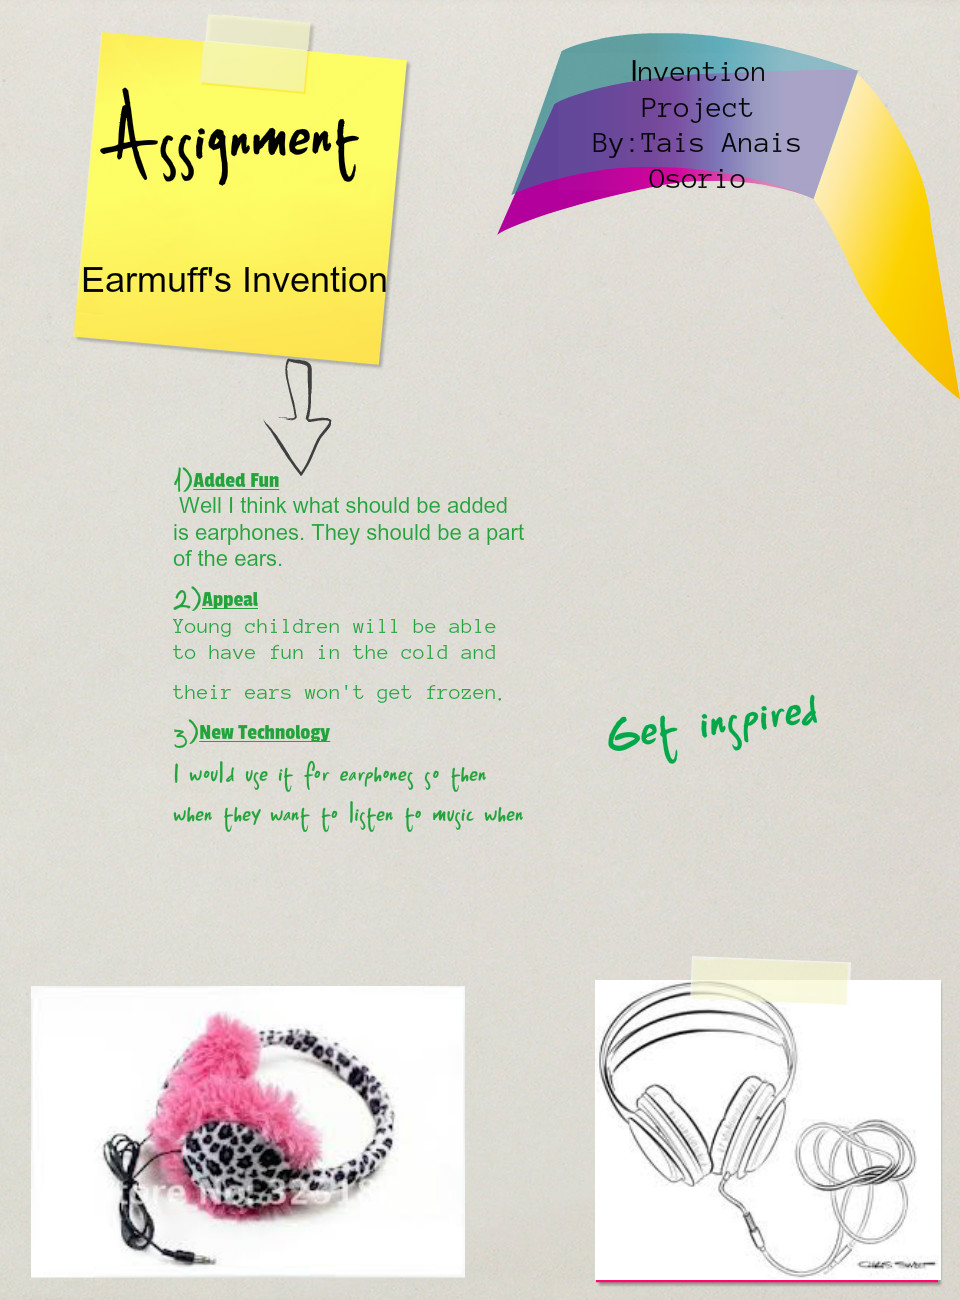 Earmuff Invention project